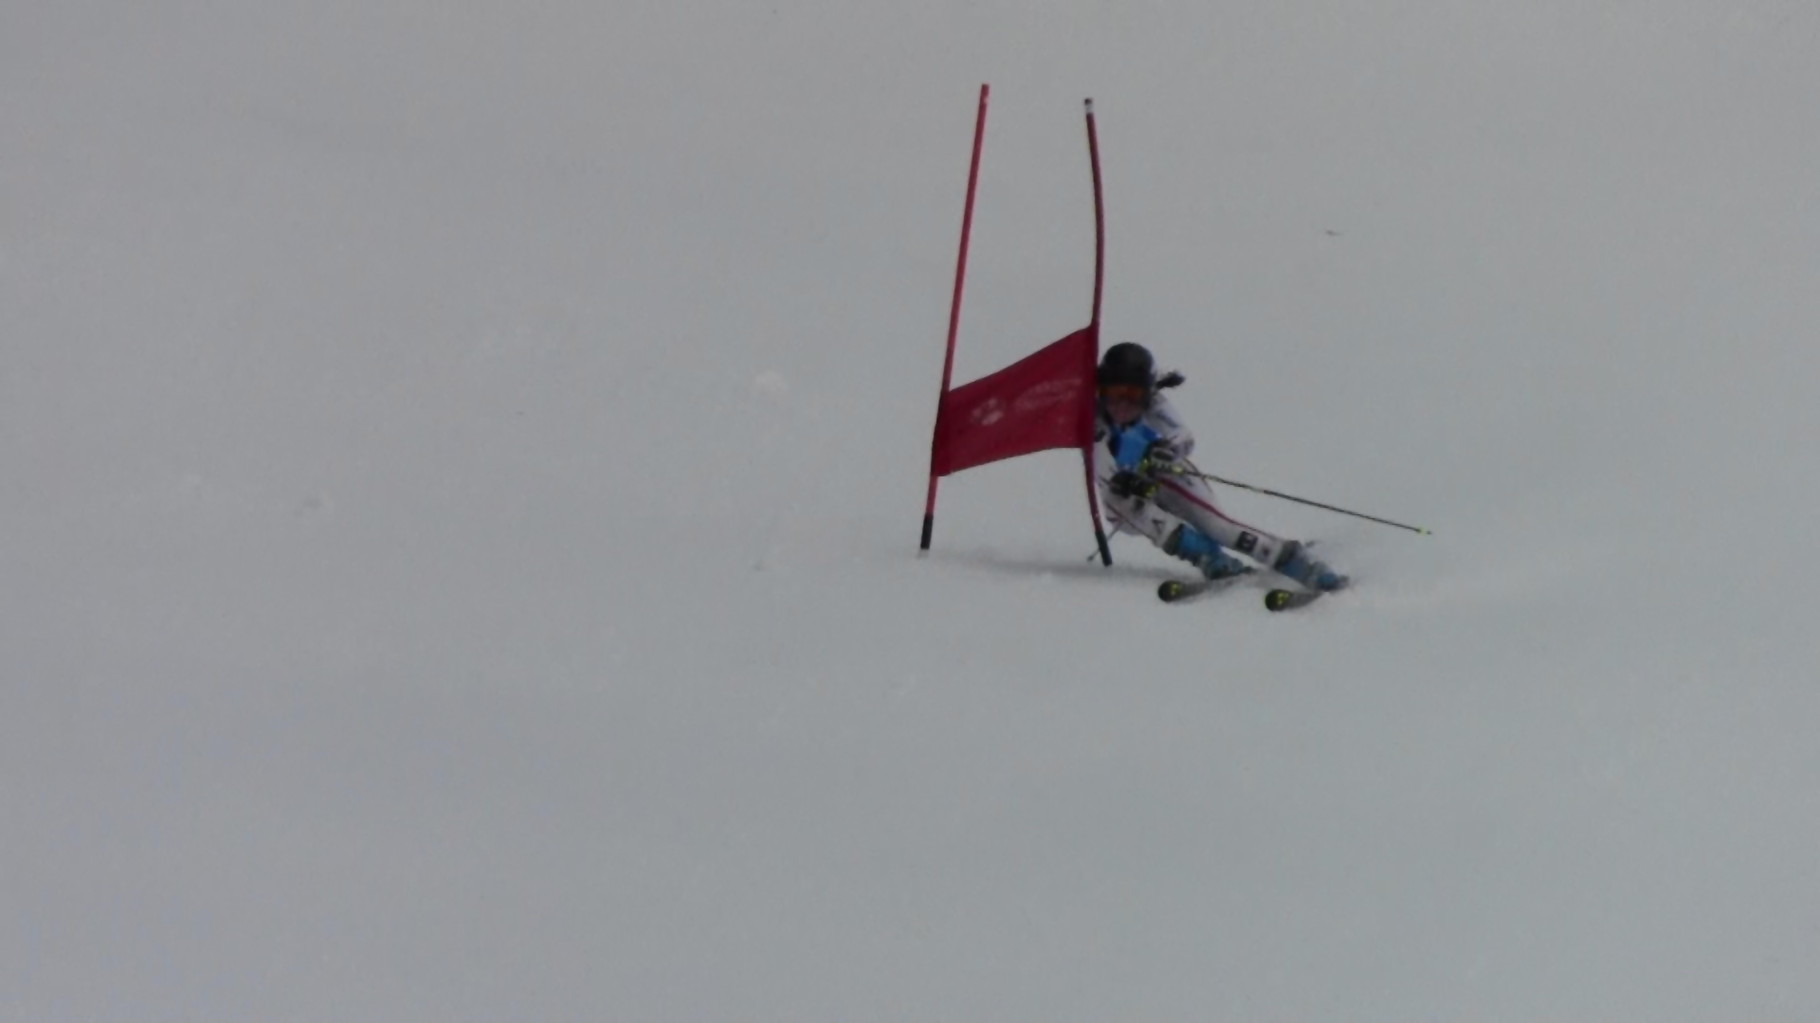 FIS-CIT in Krvavec